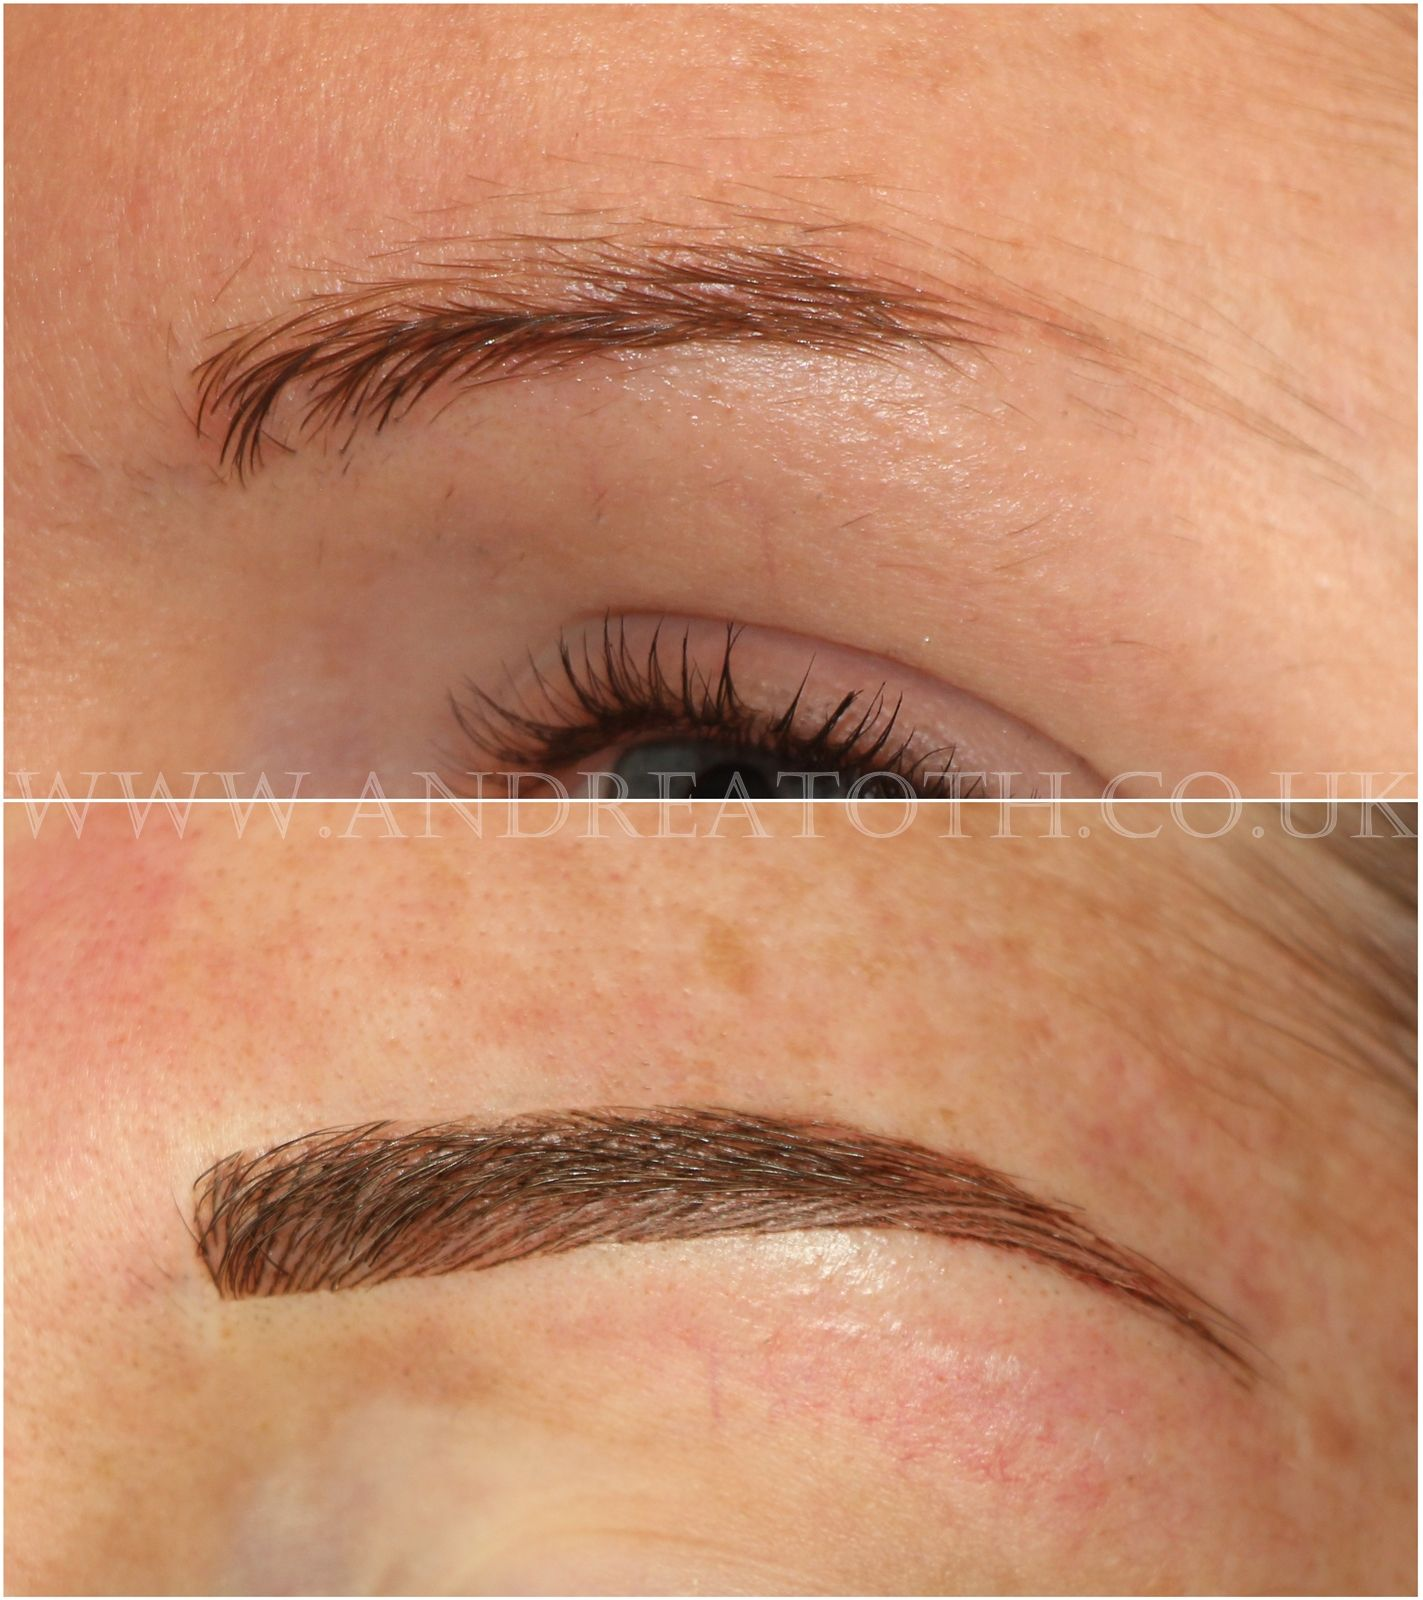 Hair stroke eyebrows semi permanent makeup with images